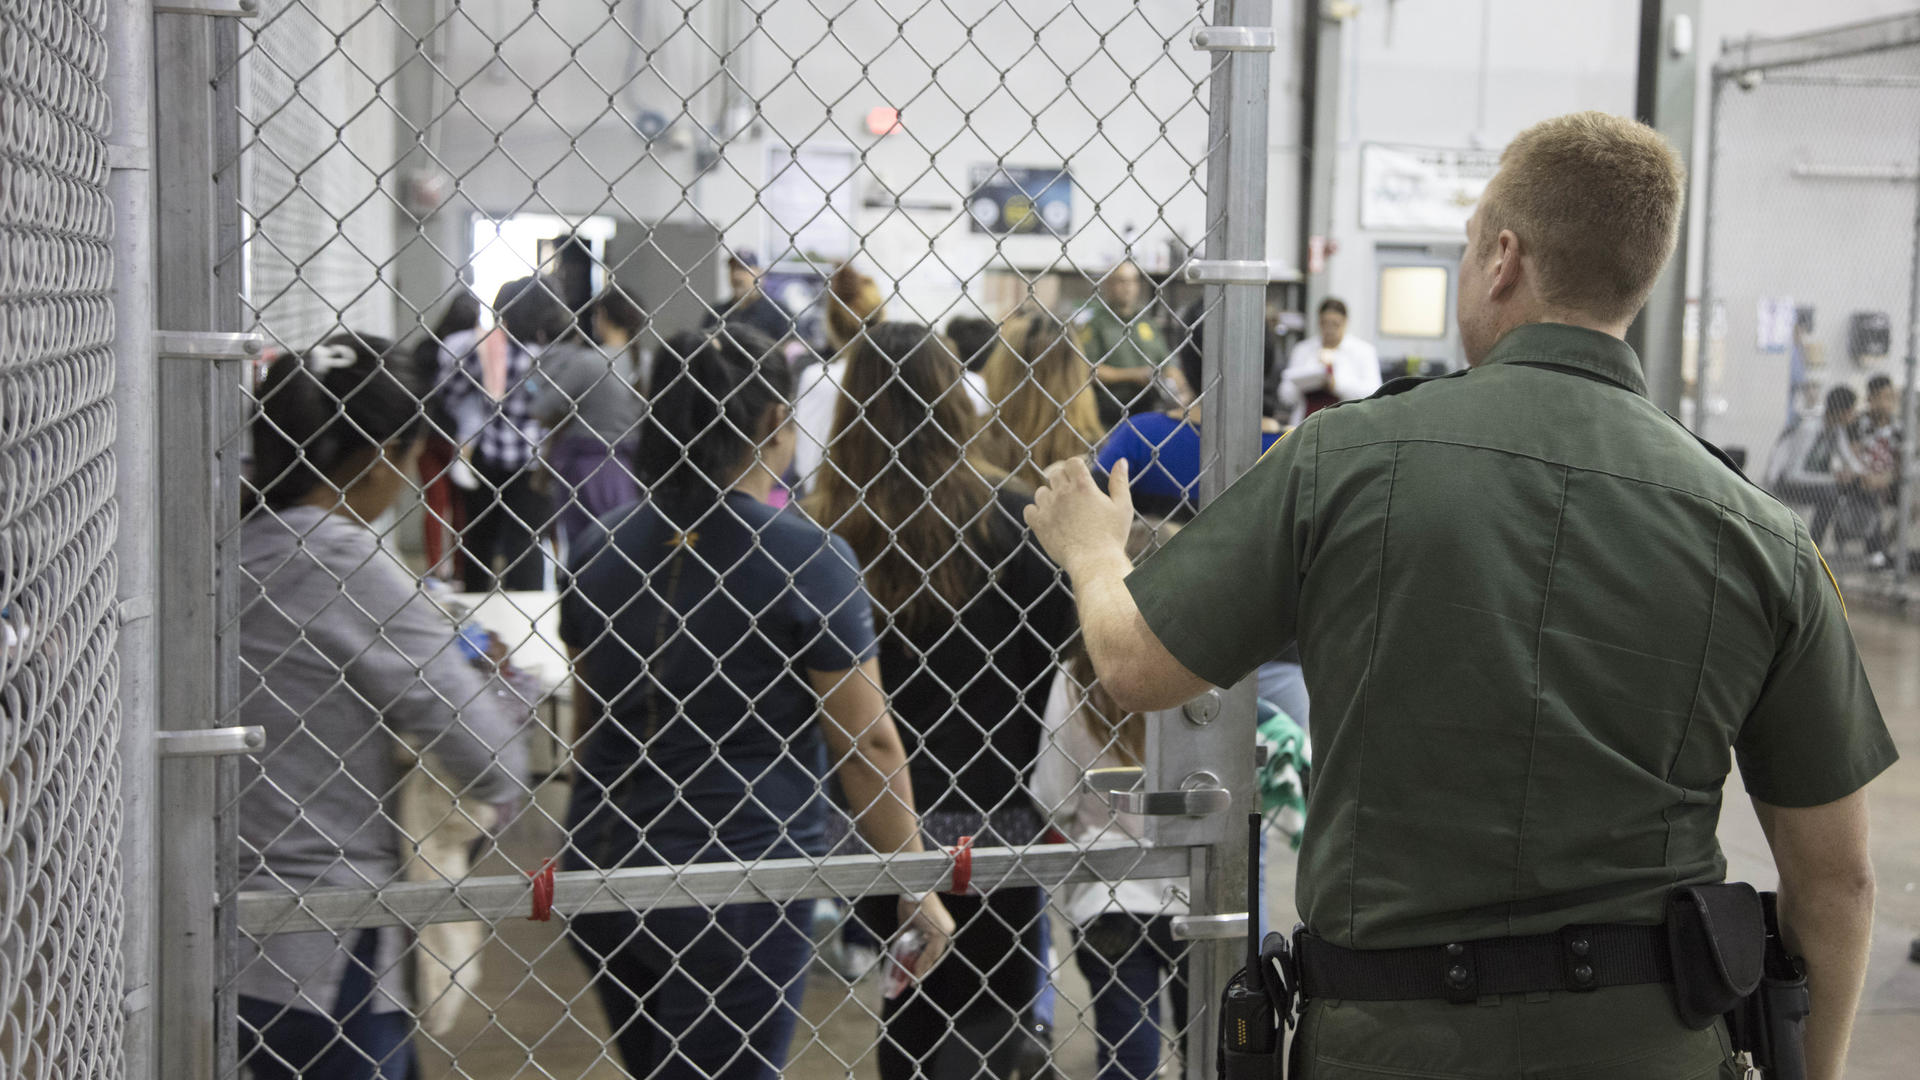 A U.S. border patrol officer at a gate as Central American families enter a detention facility after crossing the U.S.-Mexico border